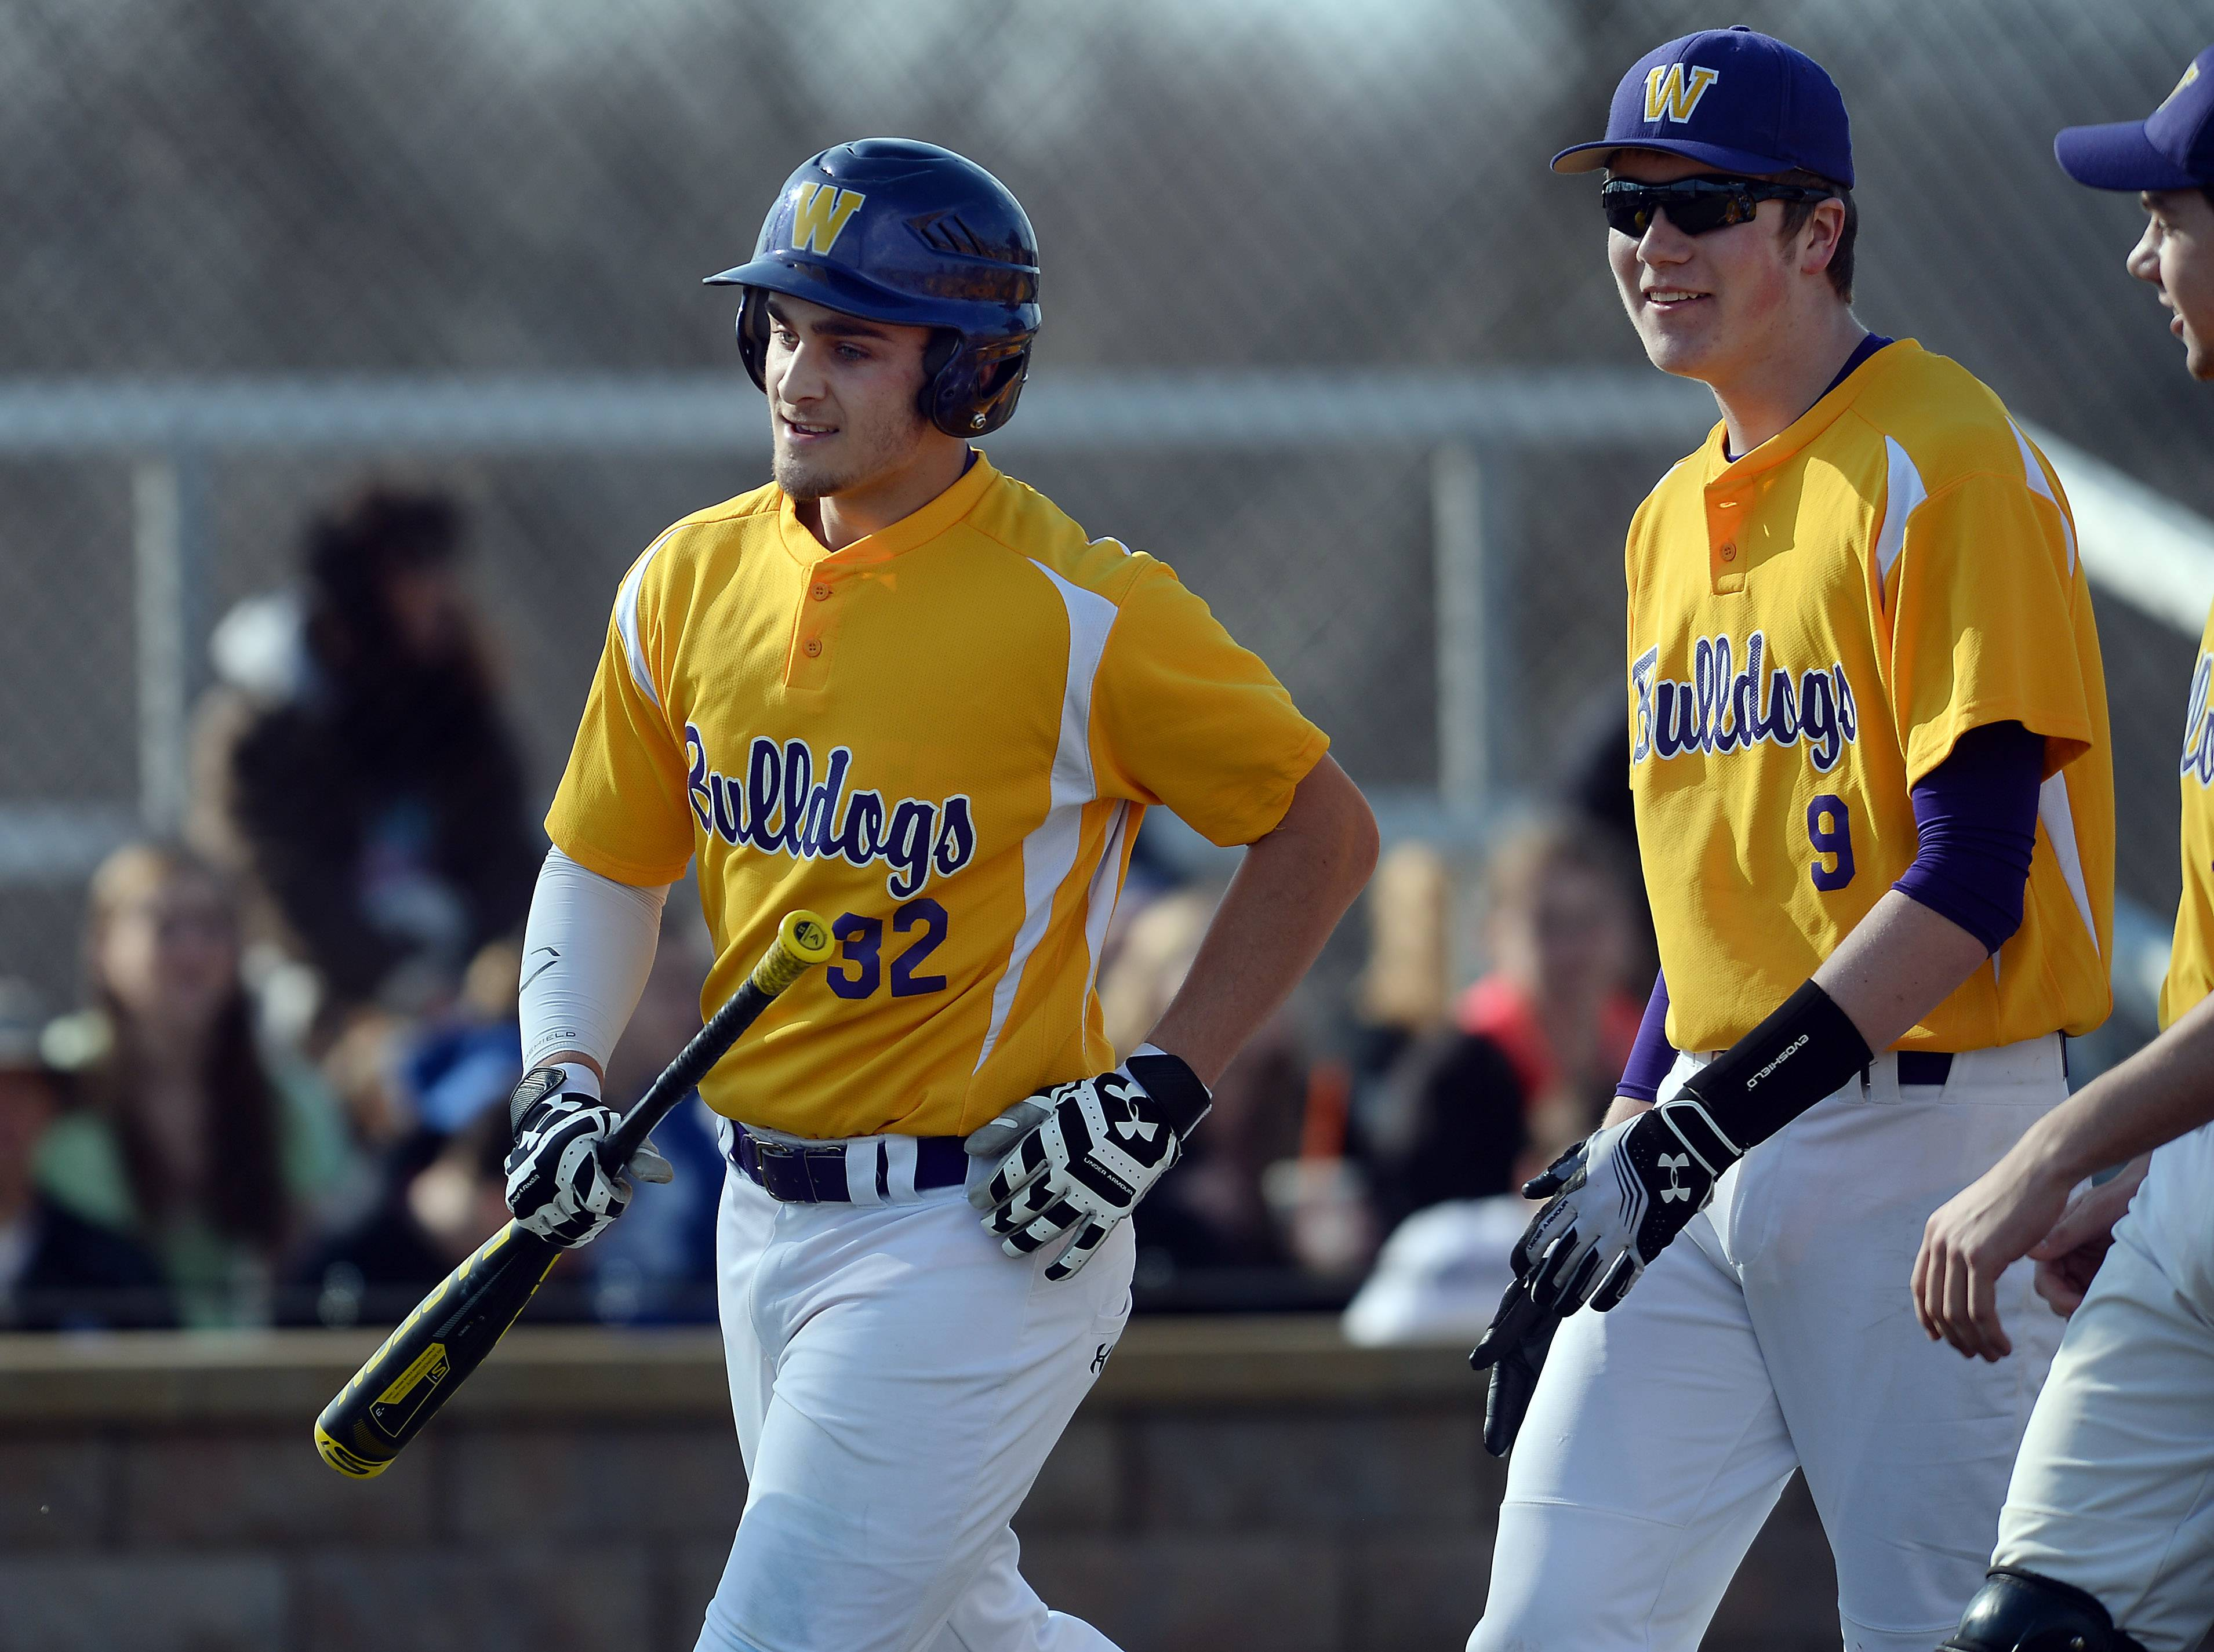 Wauconda's Ben Peterson (32) celebrates his first-inning homer against Lake Zurich's Austin Wells on Friday.